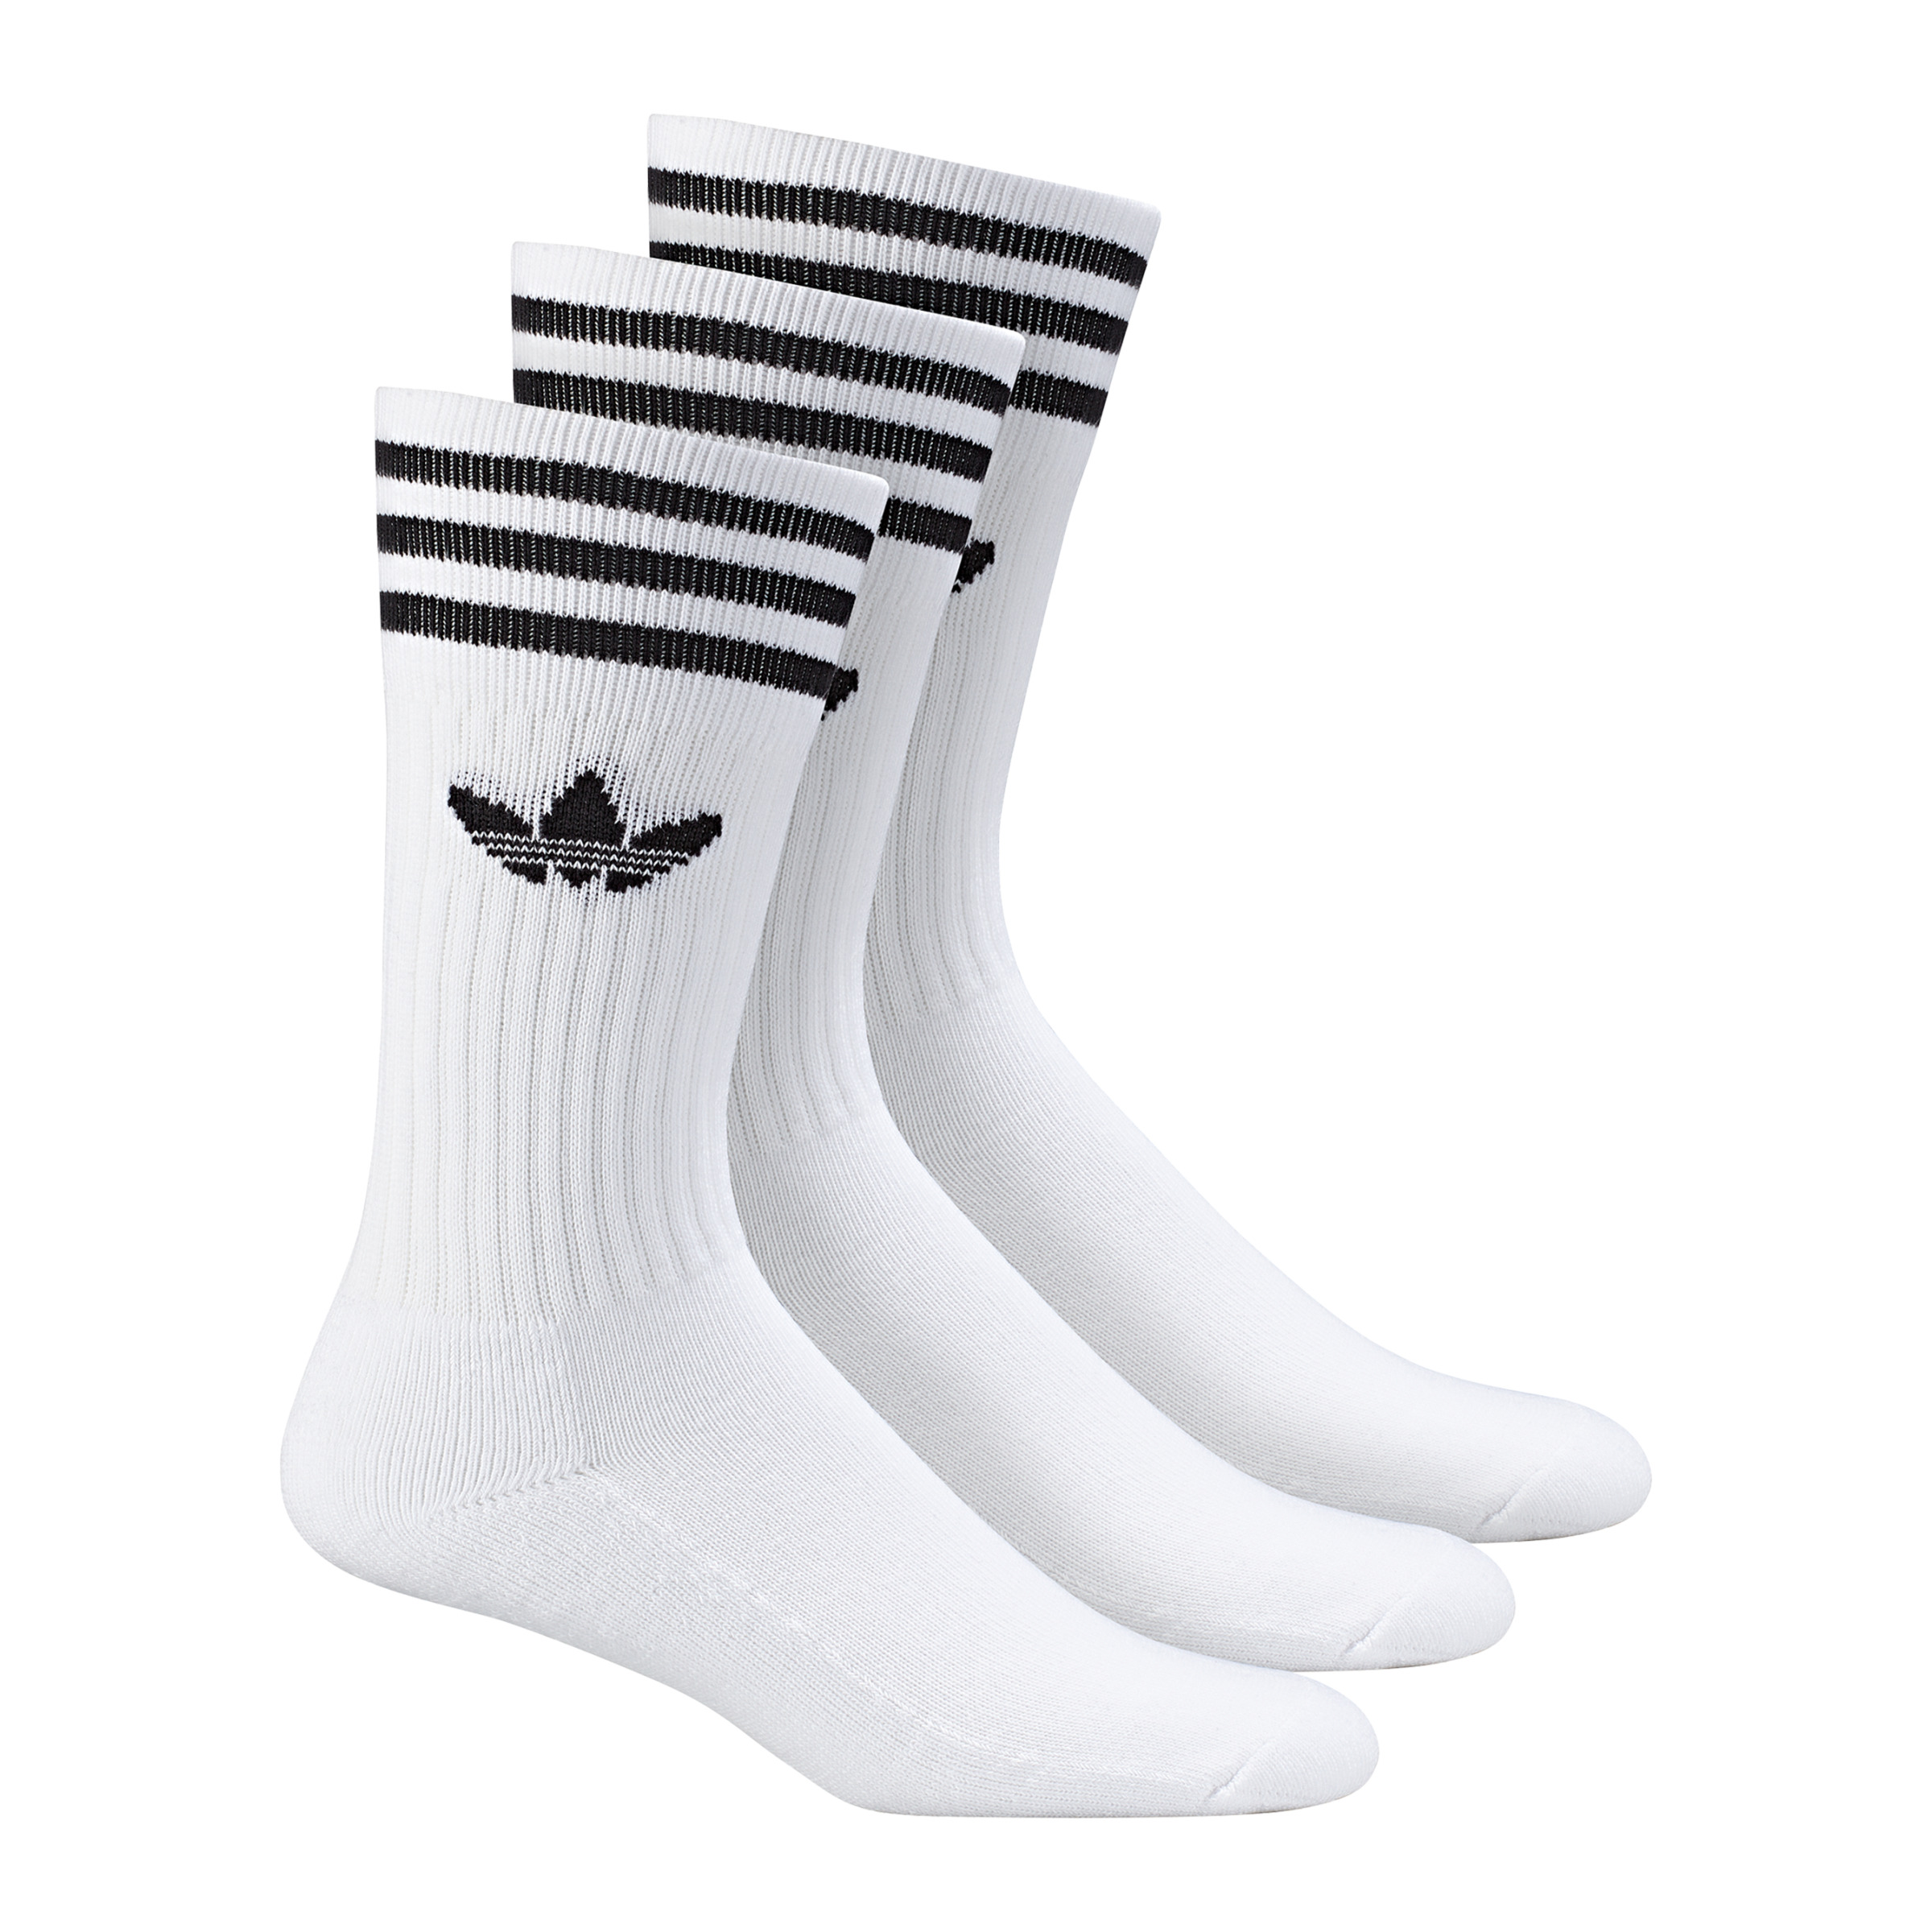 Adidas-Solid-Crew-Calcetines-3er-Pack-Blanco-y-Negro